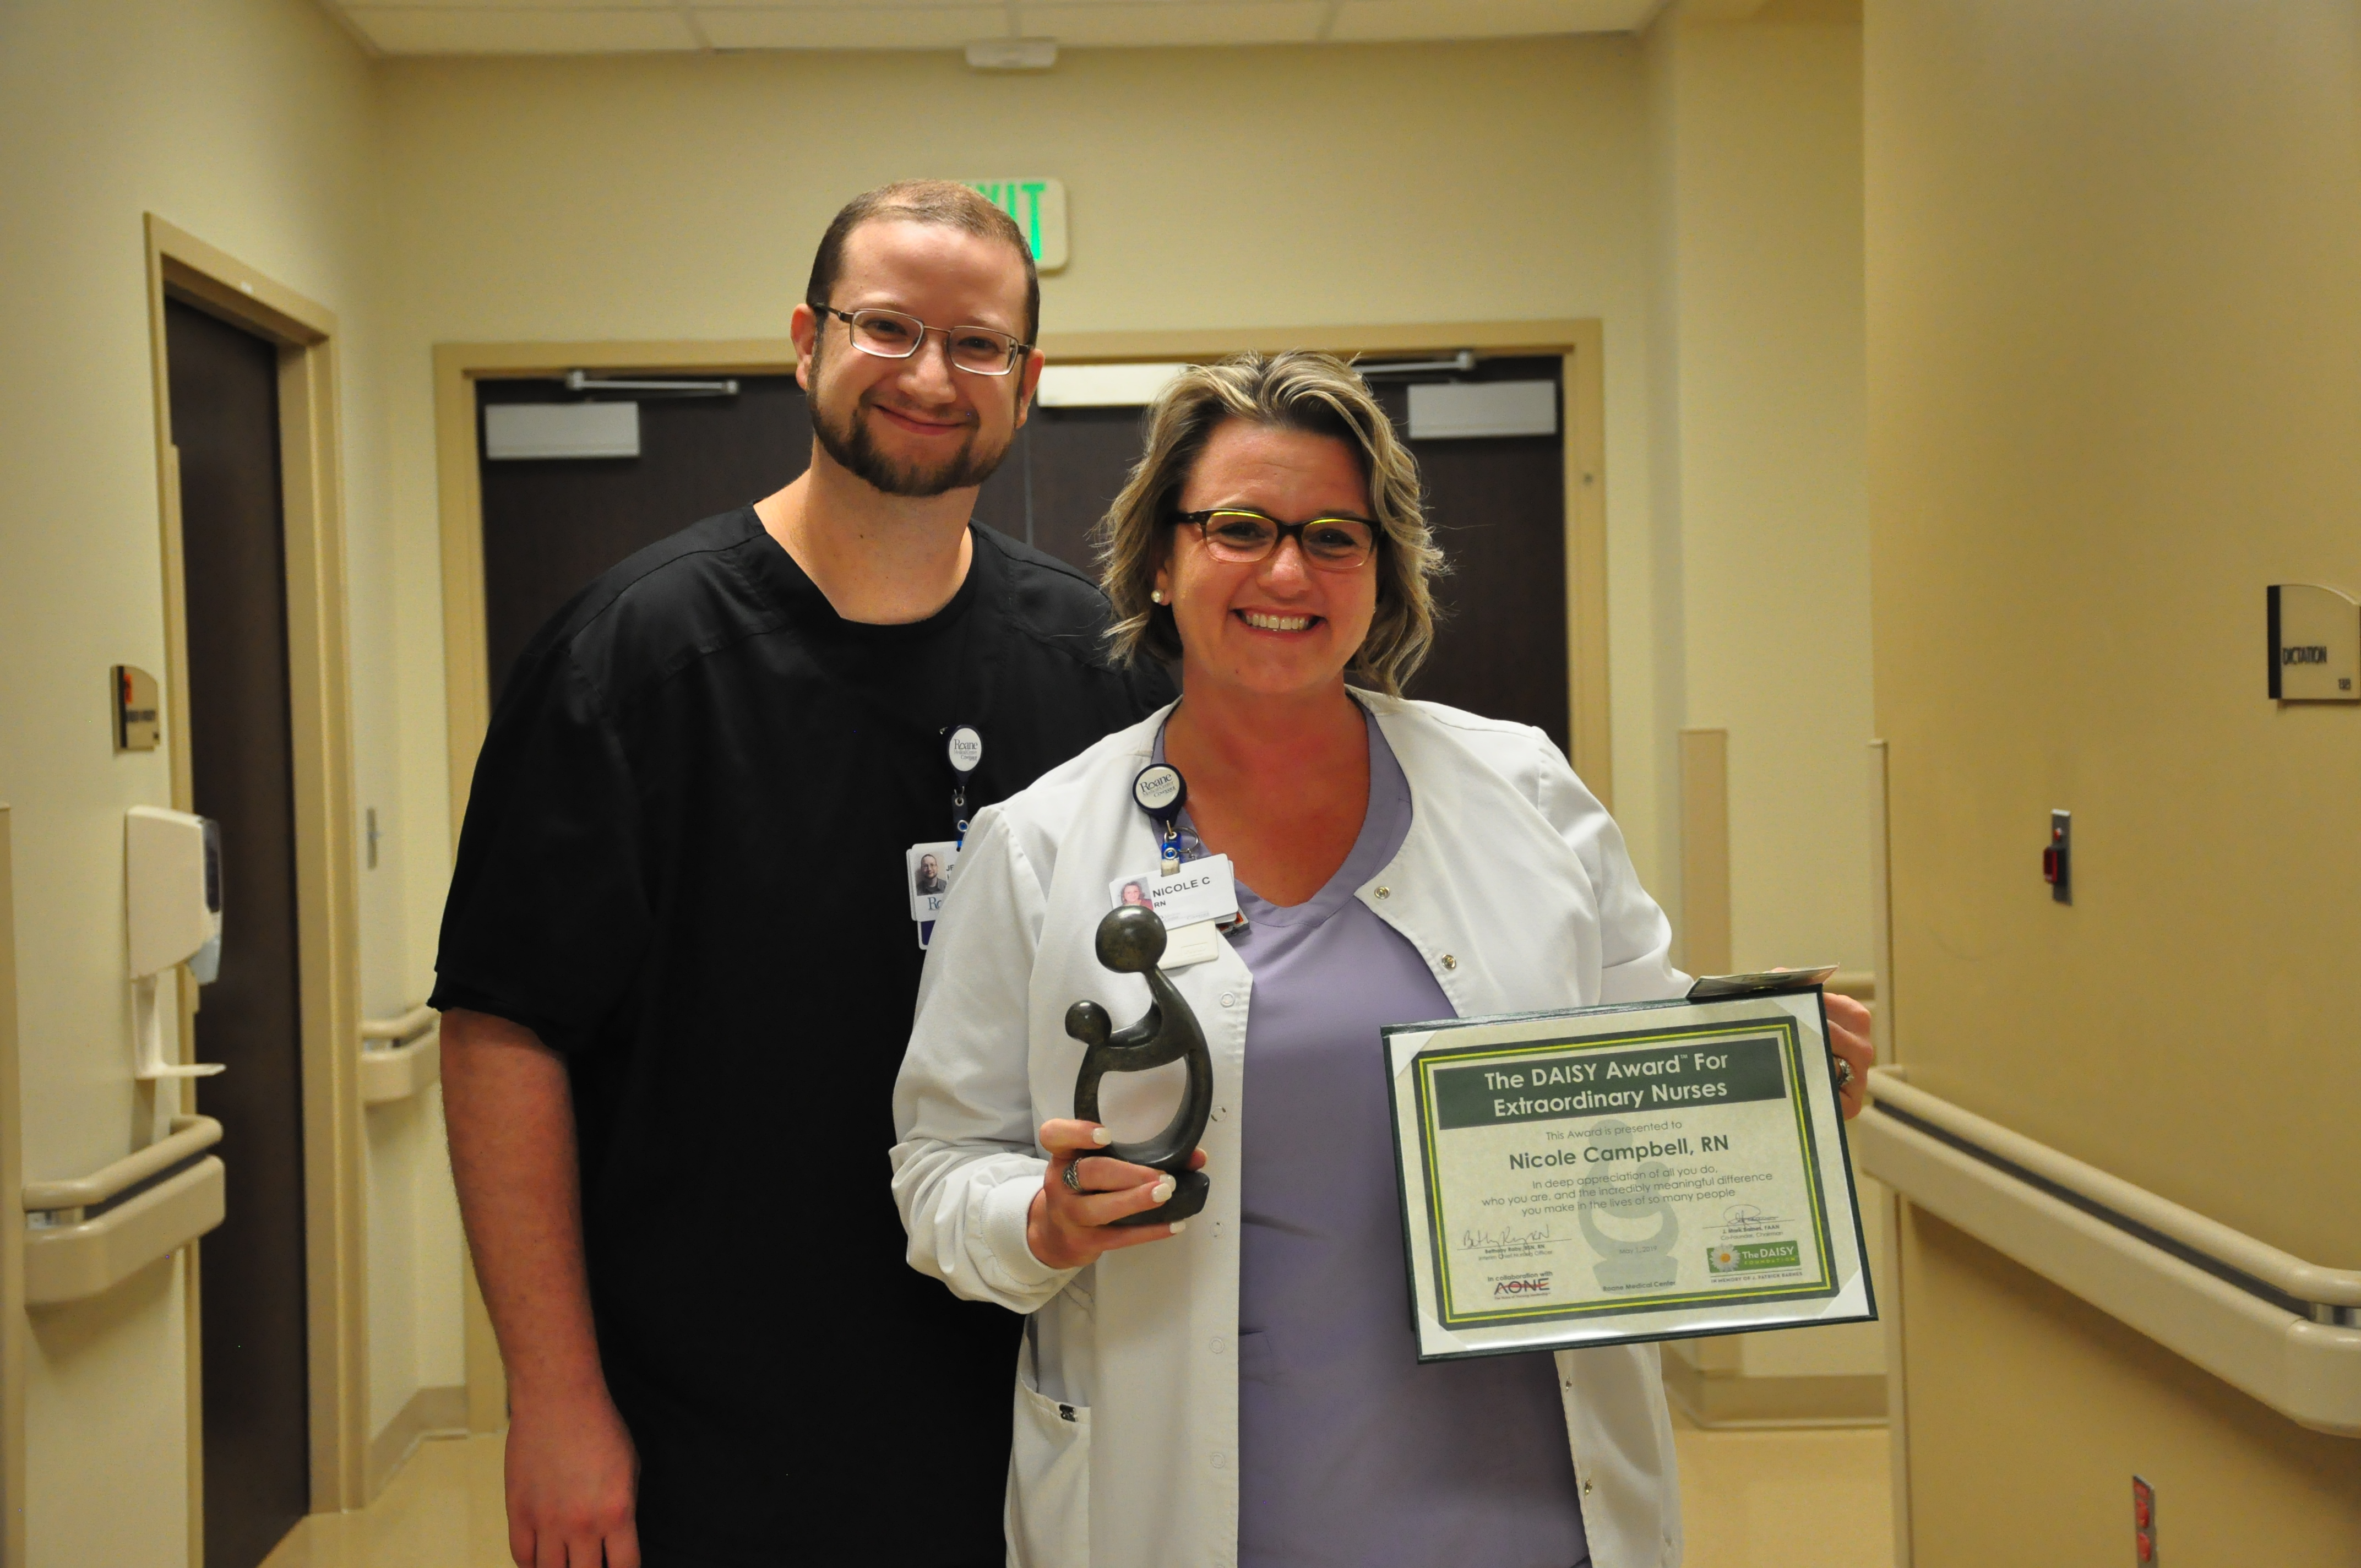 Nicole Campbell, RN, DAISY Award winner with ICU Manager, Jeff Hornbeck